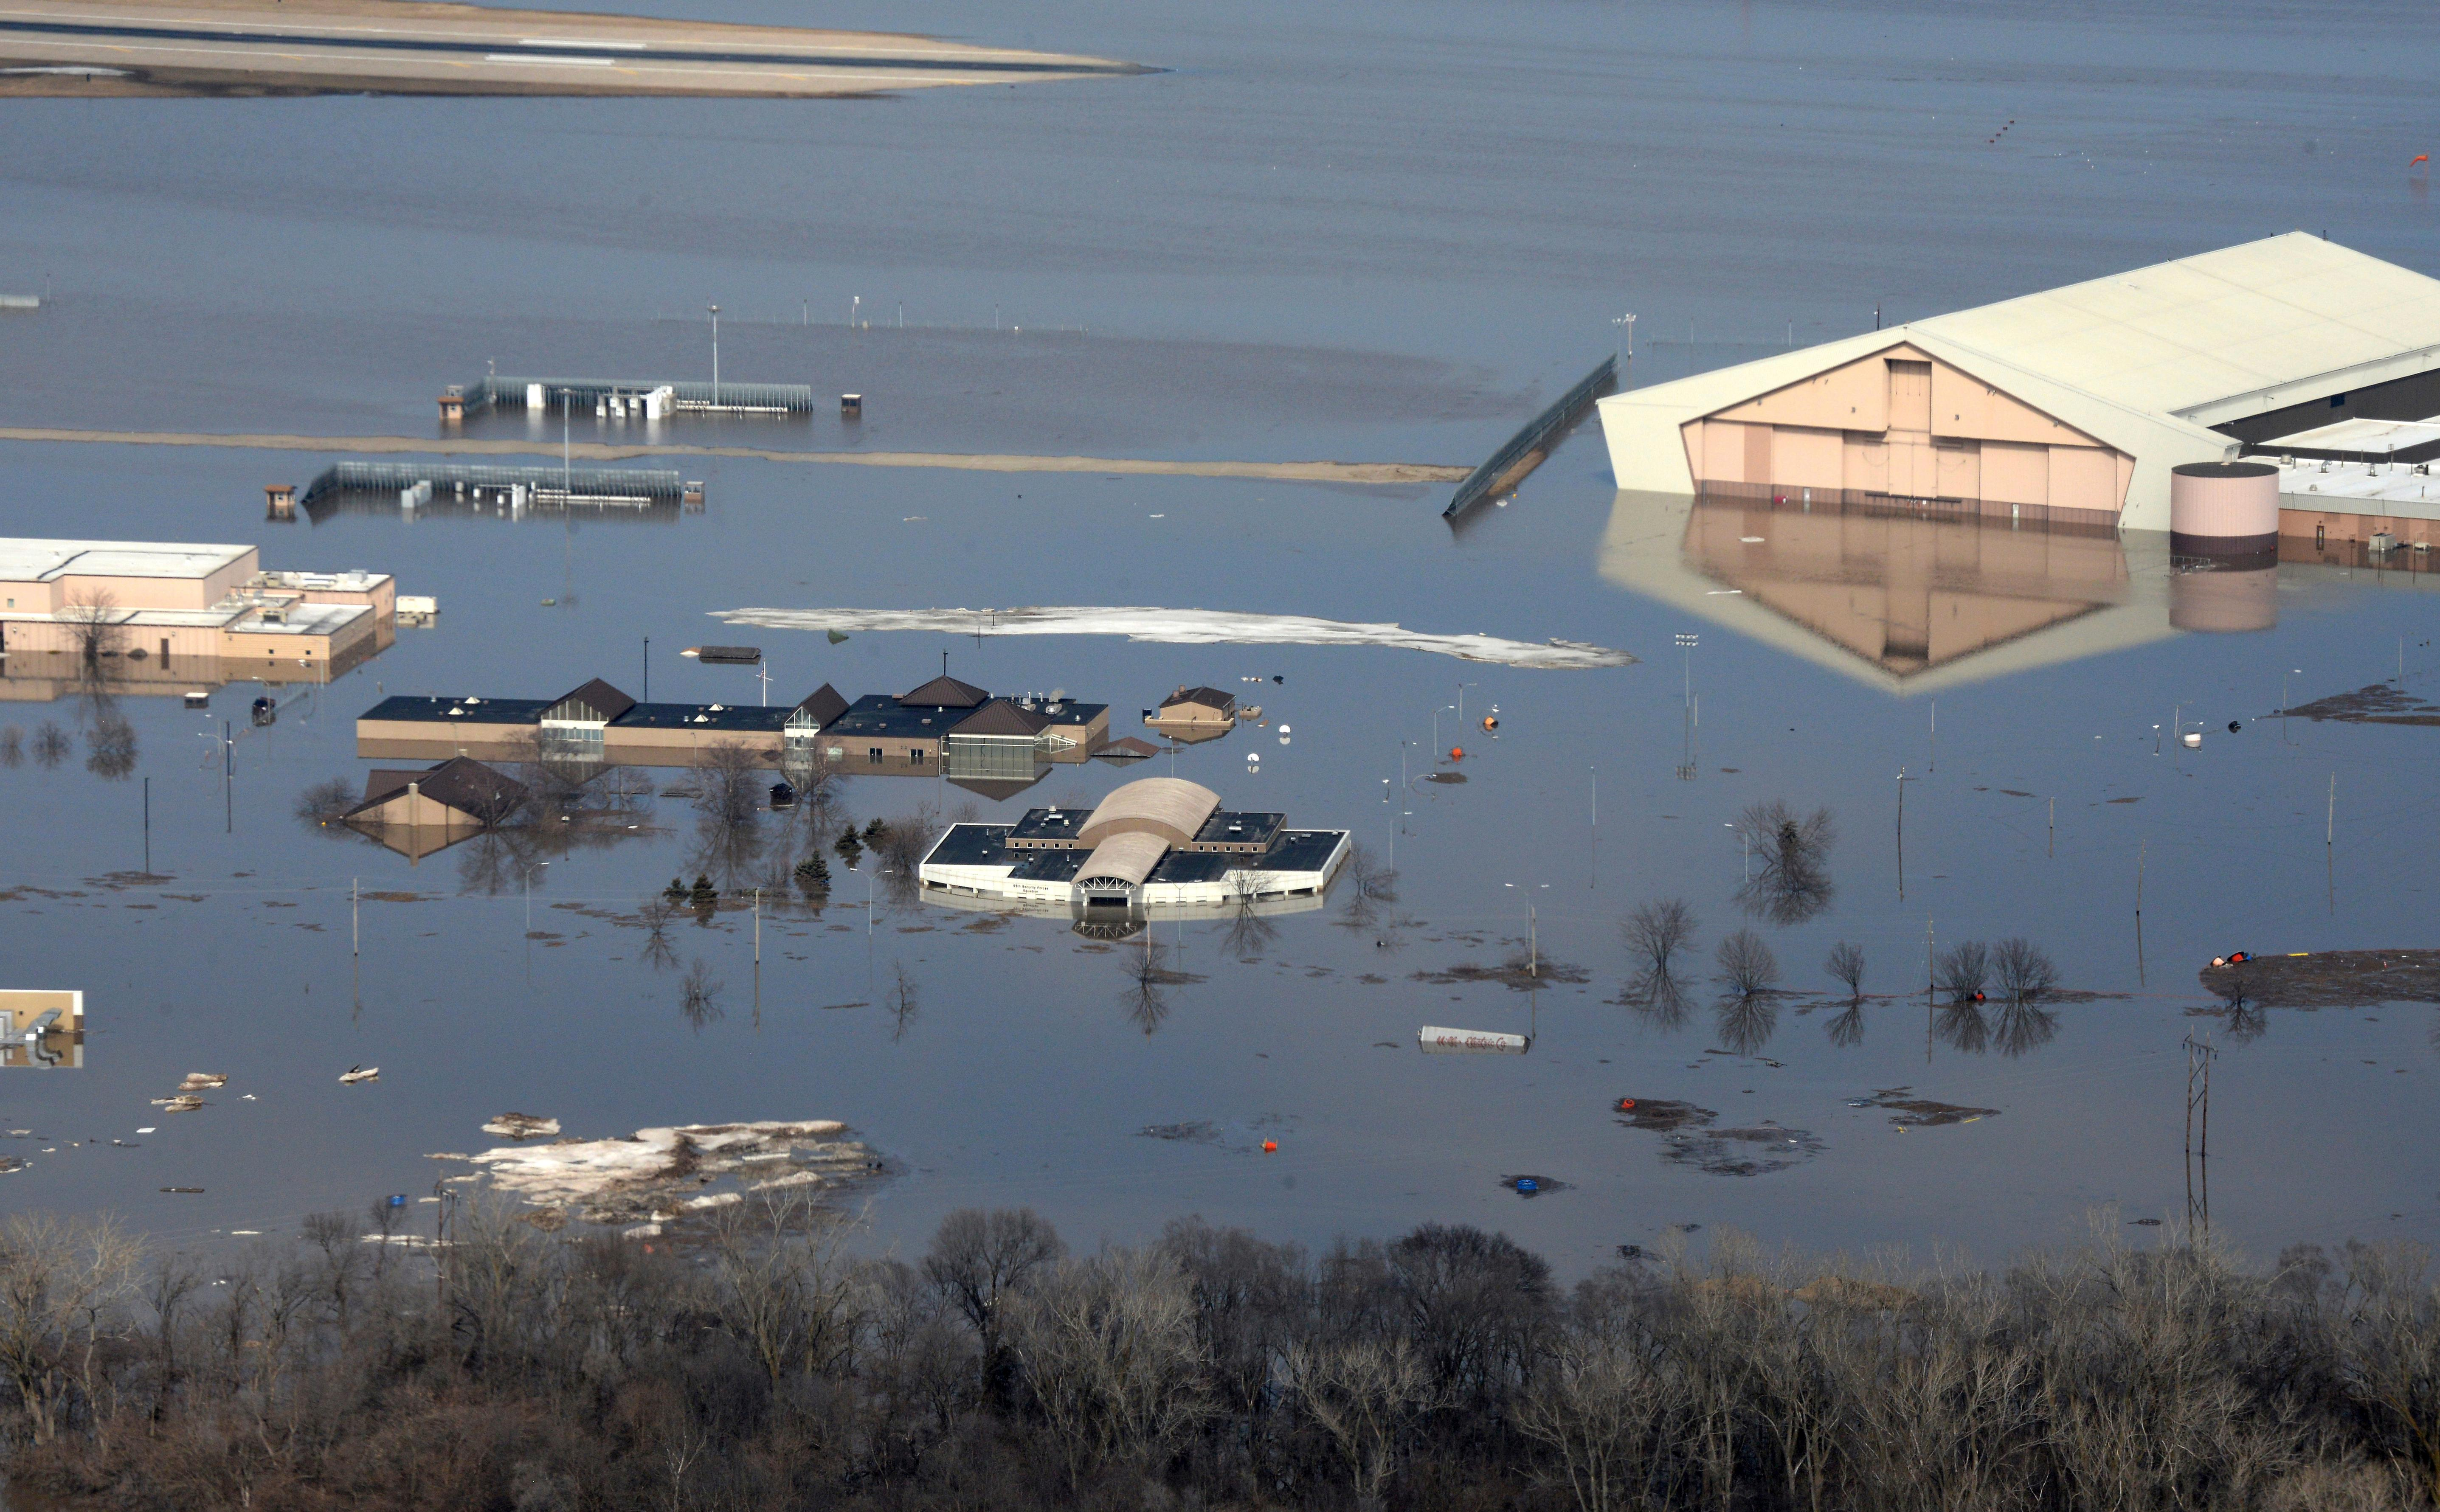 This March 17, 2019 photo released by the U.S. Air Force shows an aerial view of Offutt Air Force Base and the surrounding areas affected by flood waters in Neb. t. (Tech. Sgt. Rachelle Blake/The U.S. Air Force via AP)